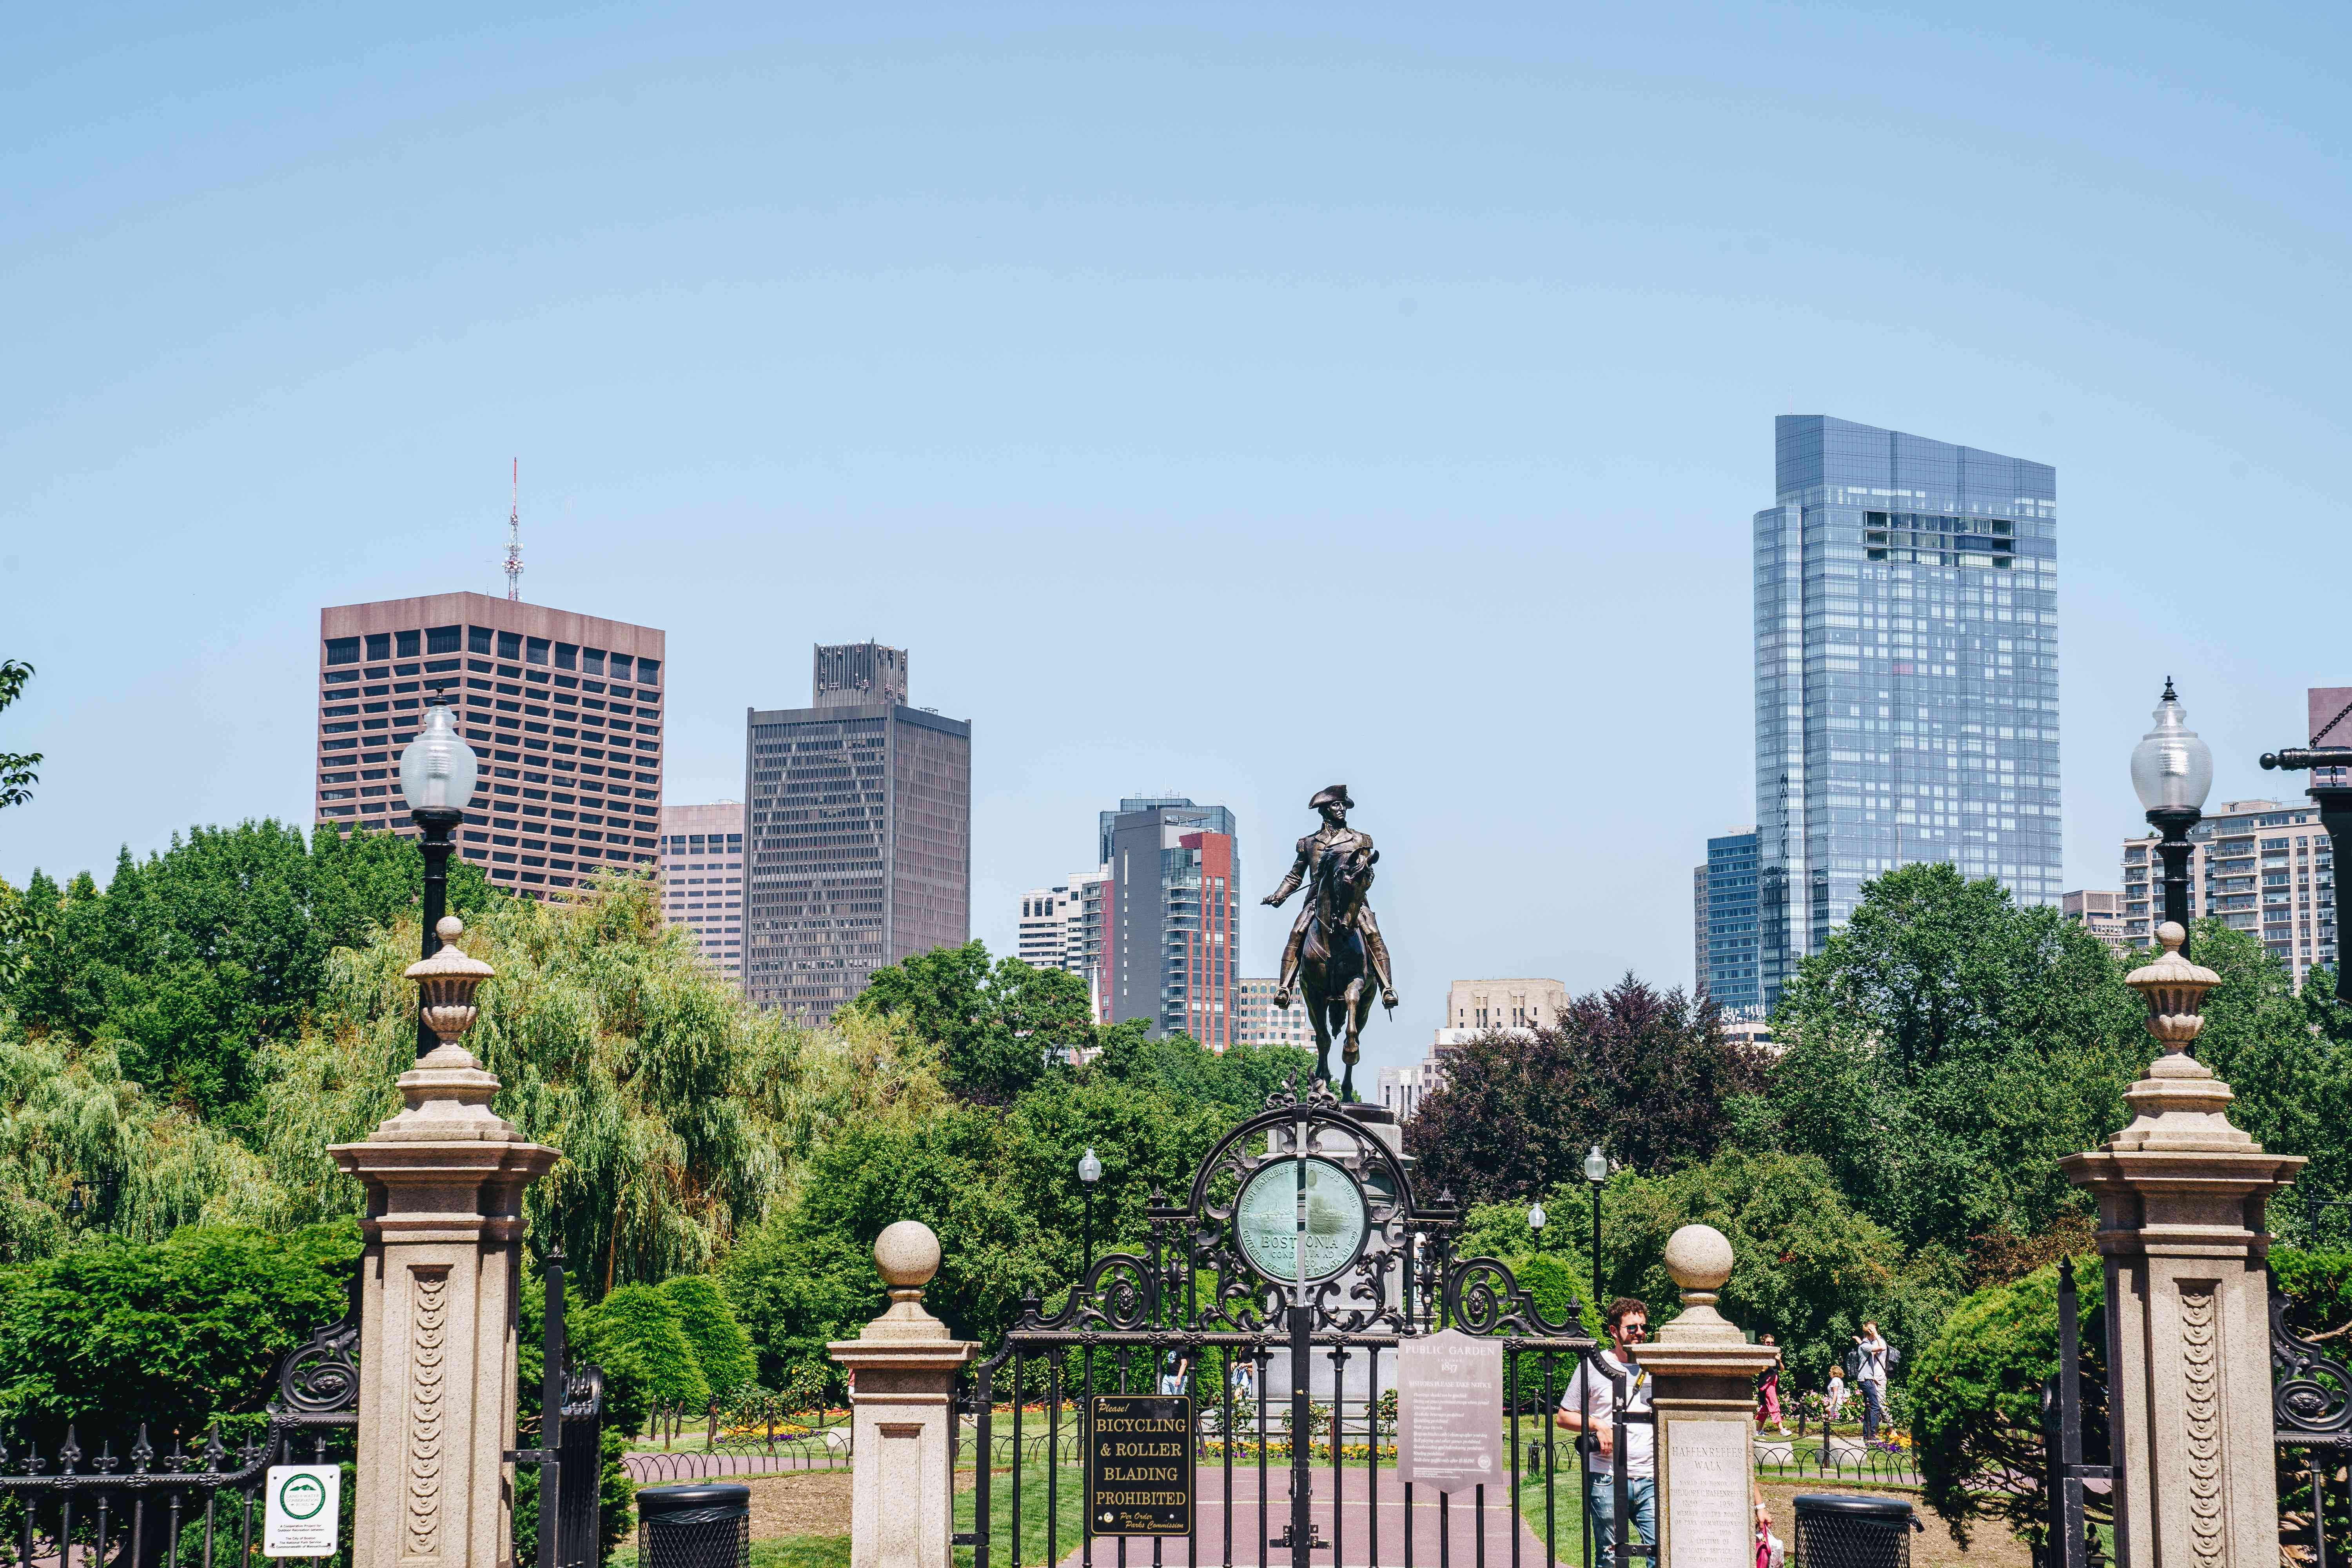 A view of boston public garden with a skyline behind it